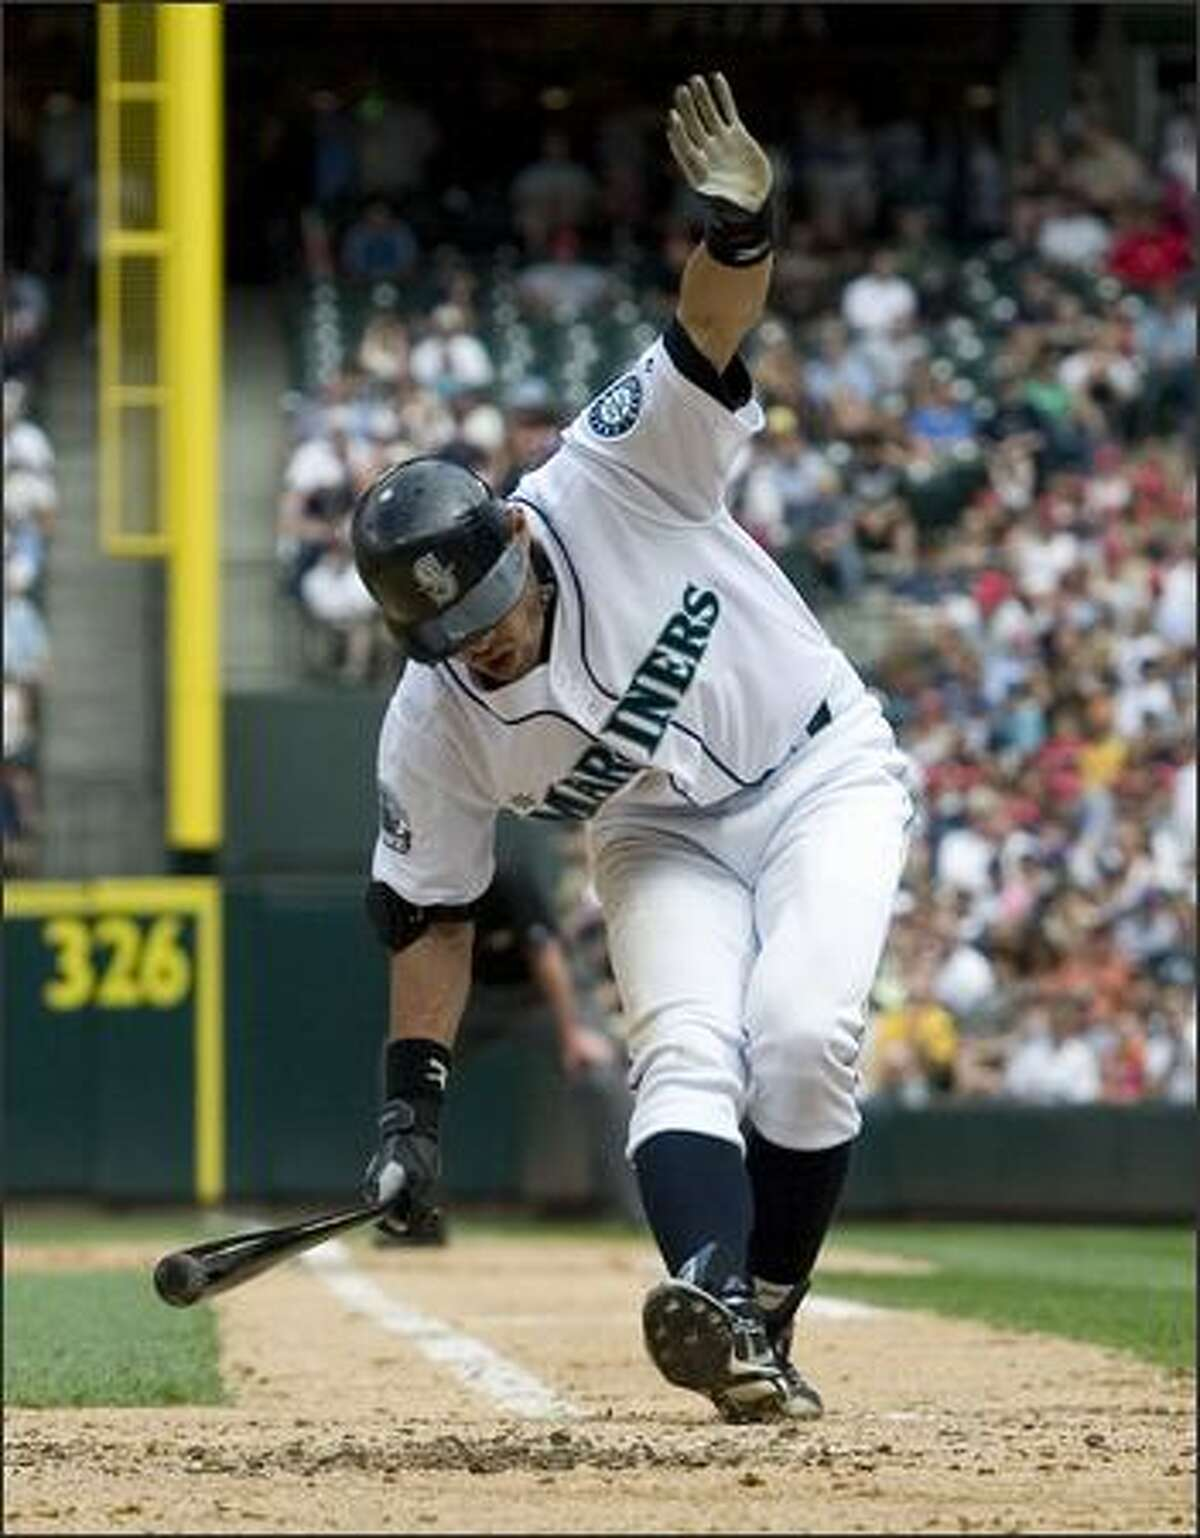 Mariners center fielder Ichiro Suzuki reacts after being hit on his right knee by a pitch by Tigers starter Justin Verlander.